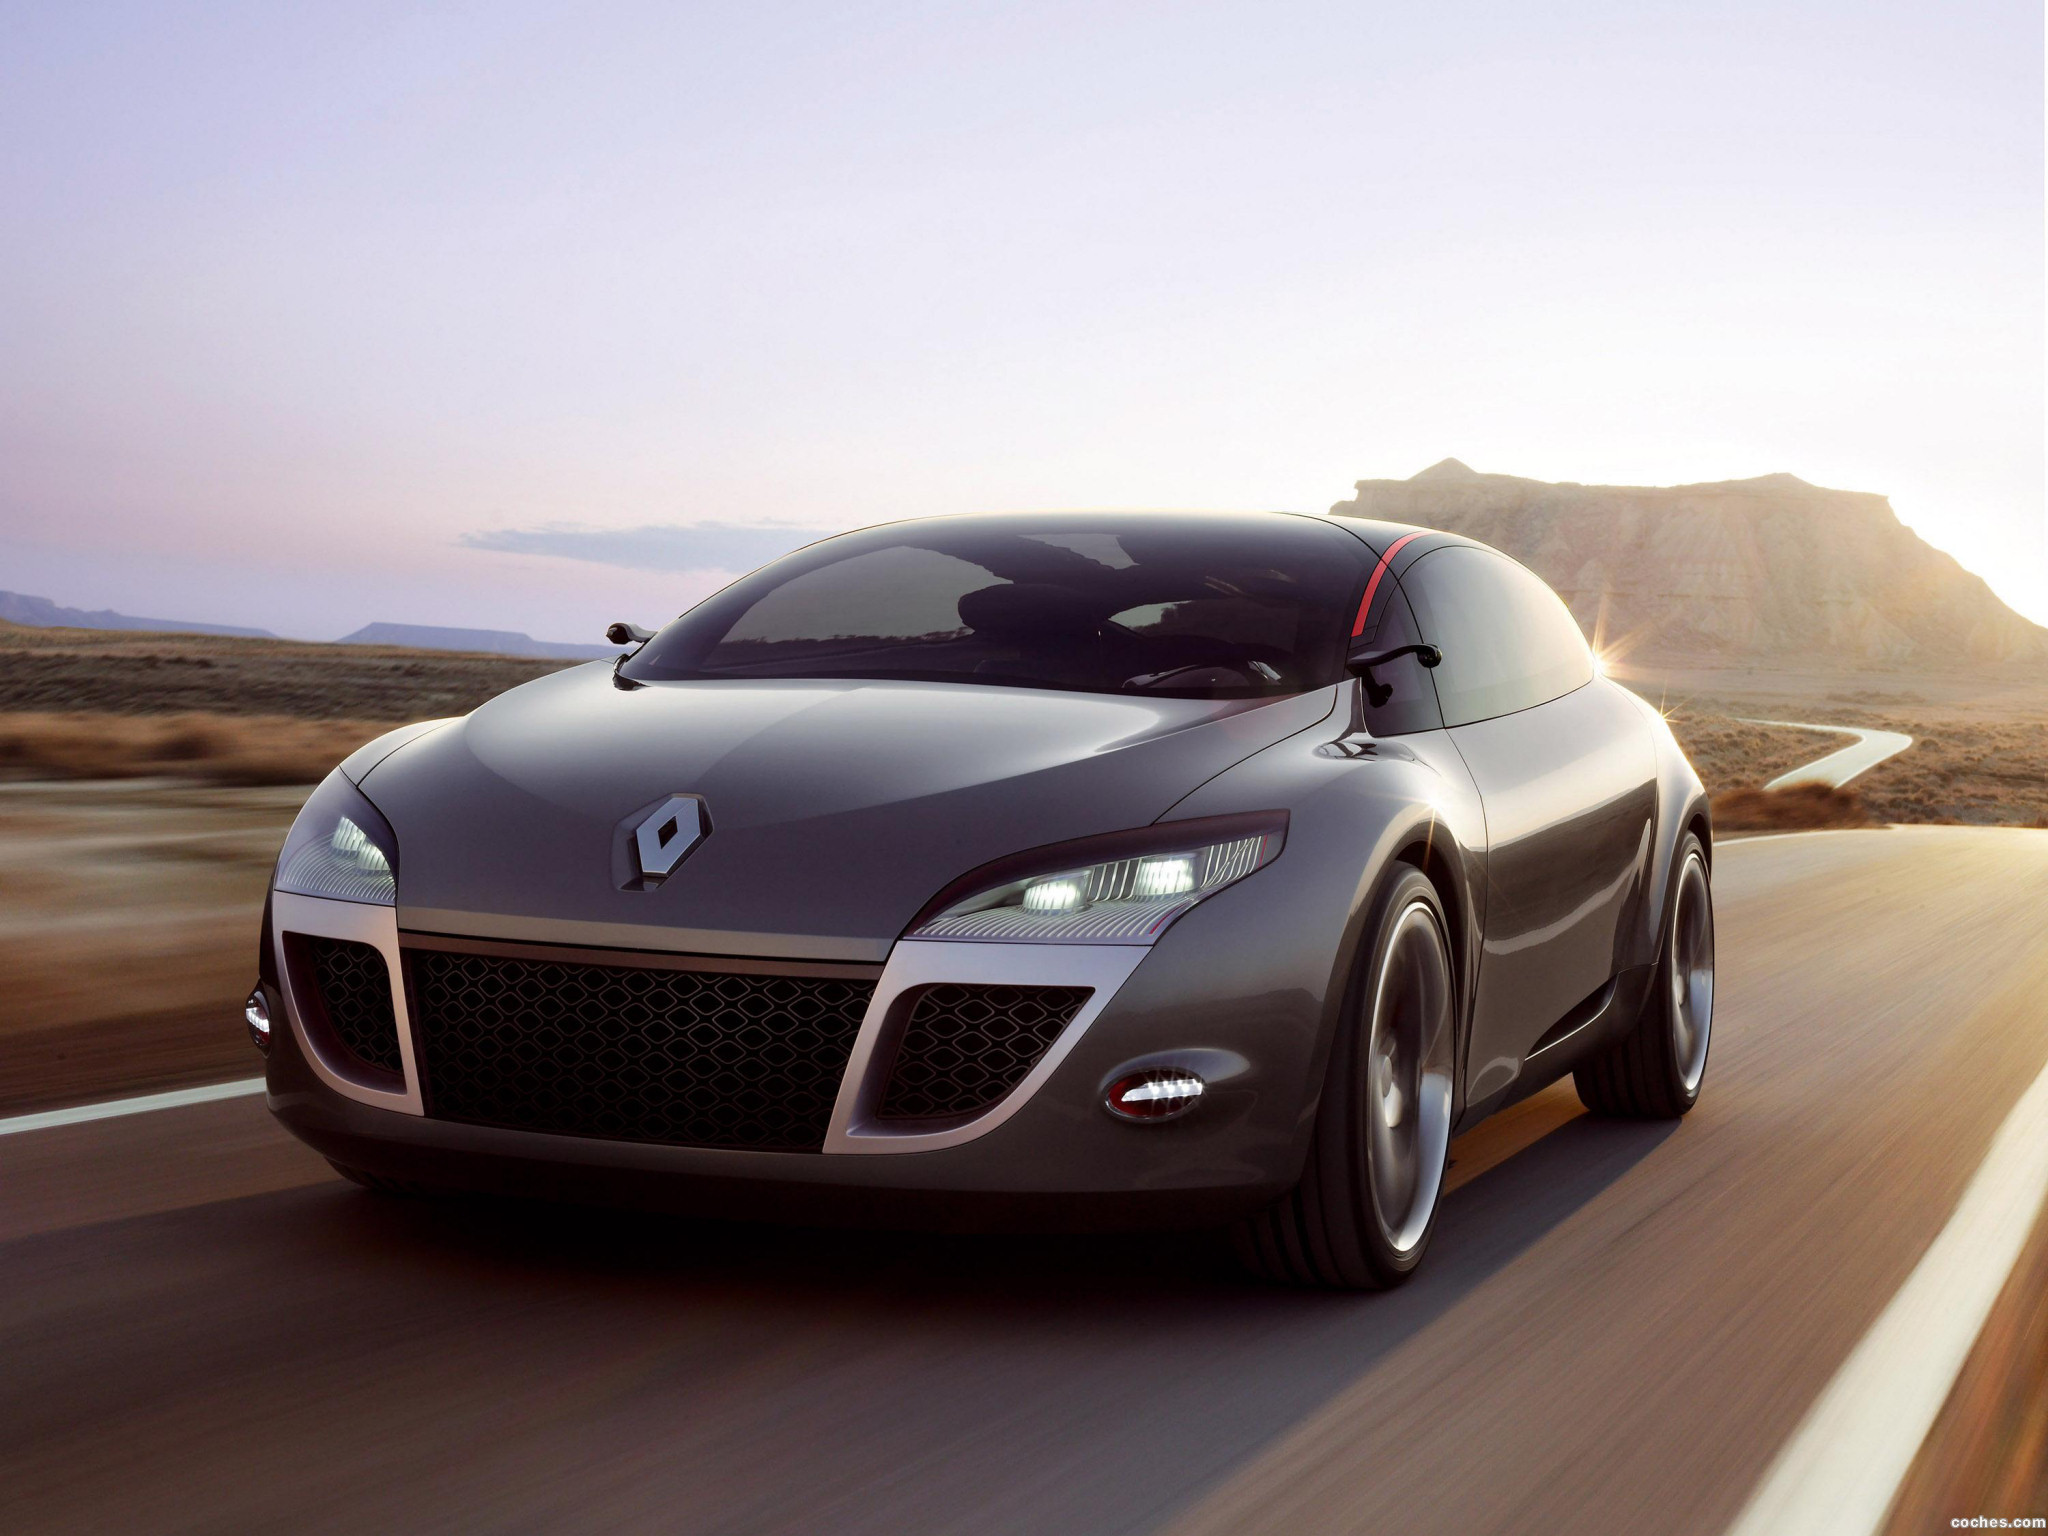 renault_megane-coupe-concept_r13.jpg